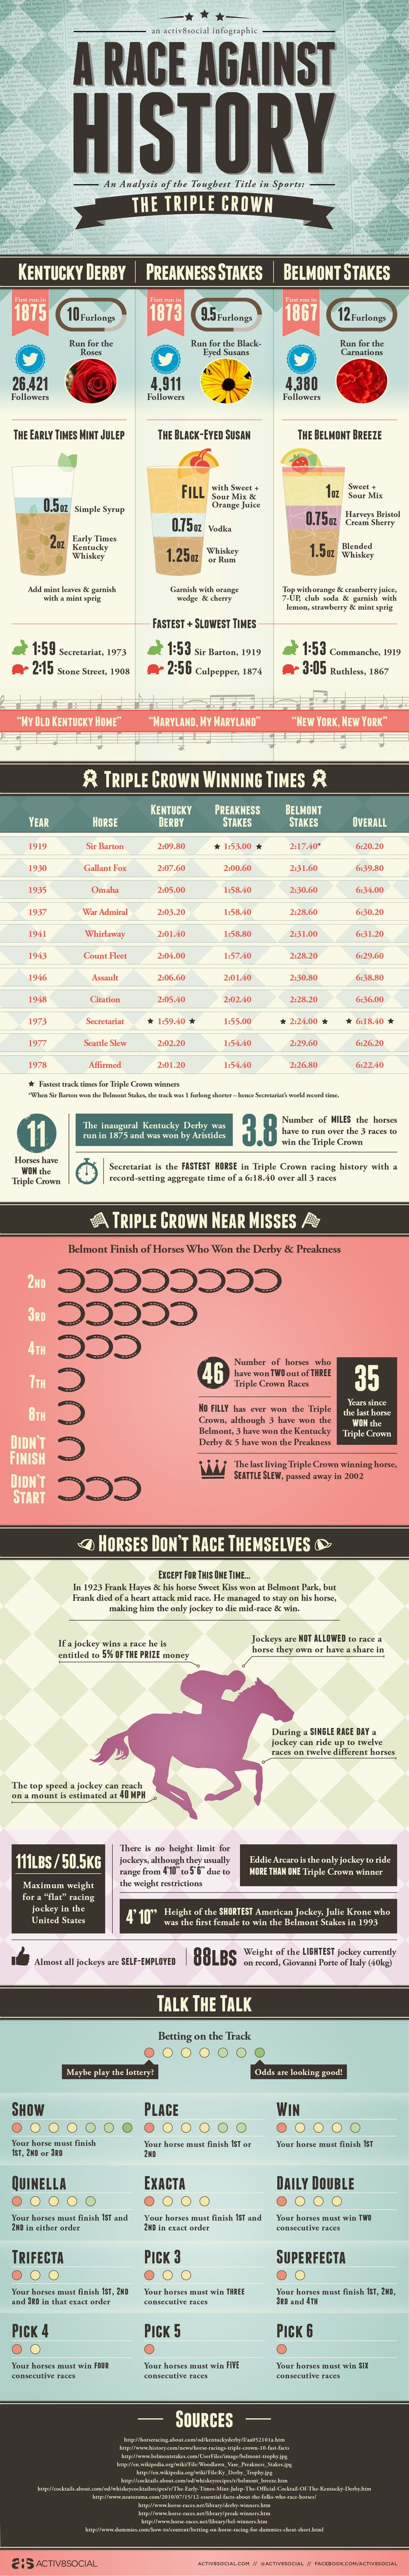 IInfographic about the Triple Crown races - this is before American Pharoah's Triple crown win in 2015